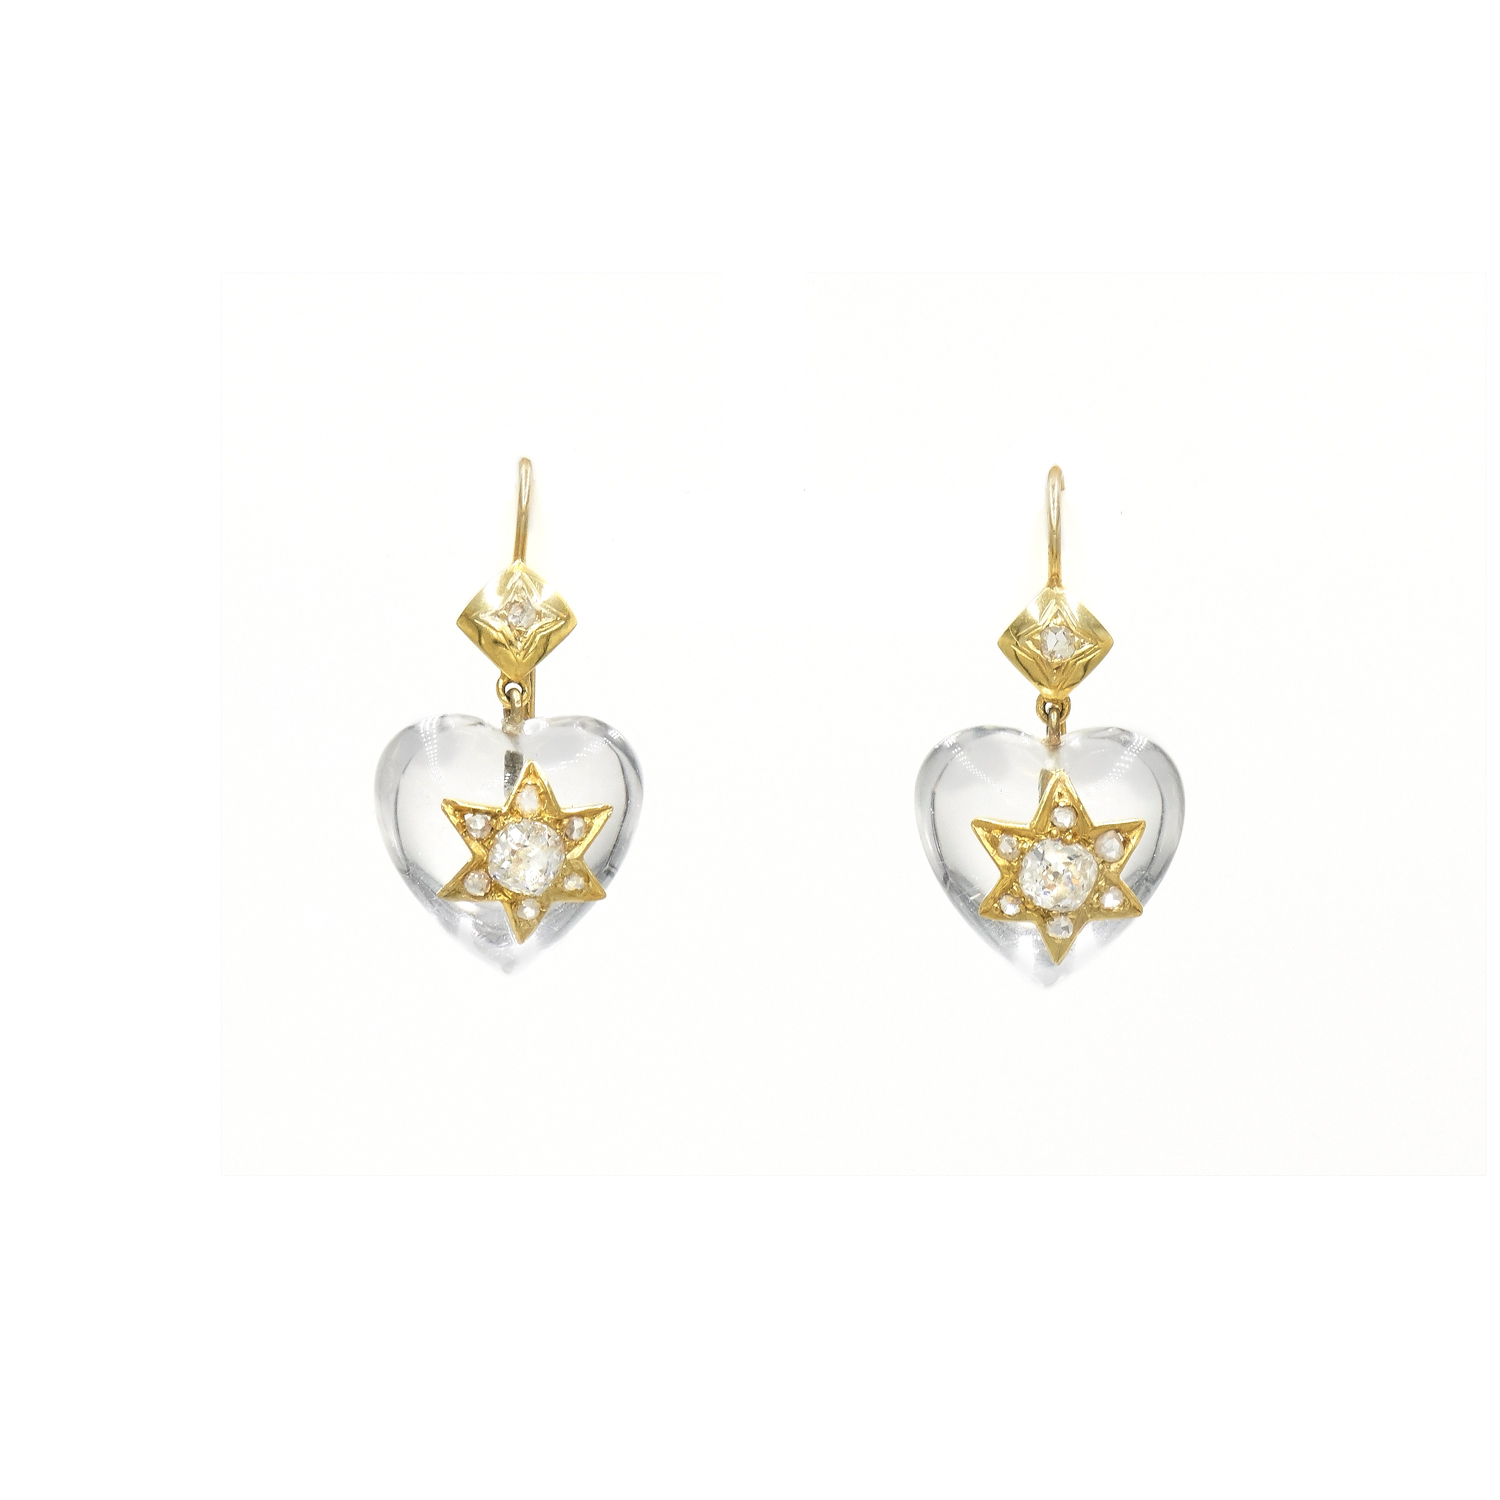 Antique Rock Crystal and Diamond Star and Heart Motif Pendant Earrings Style E-41756-FL-0-0